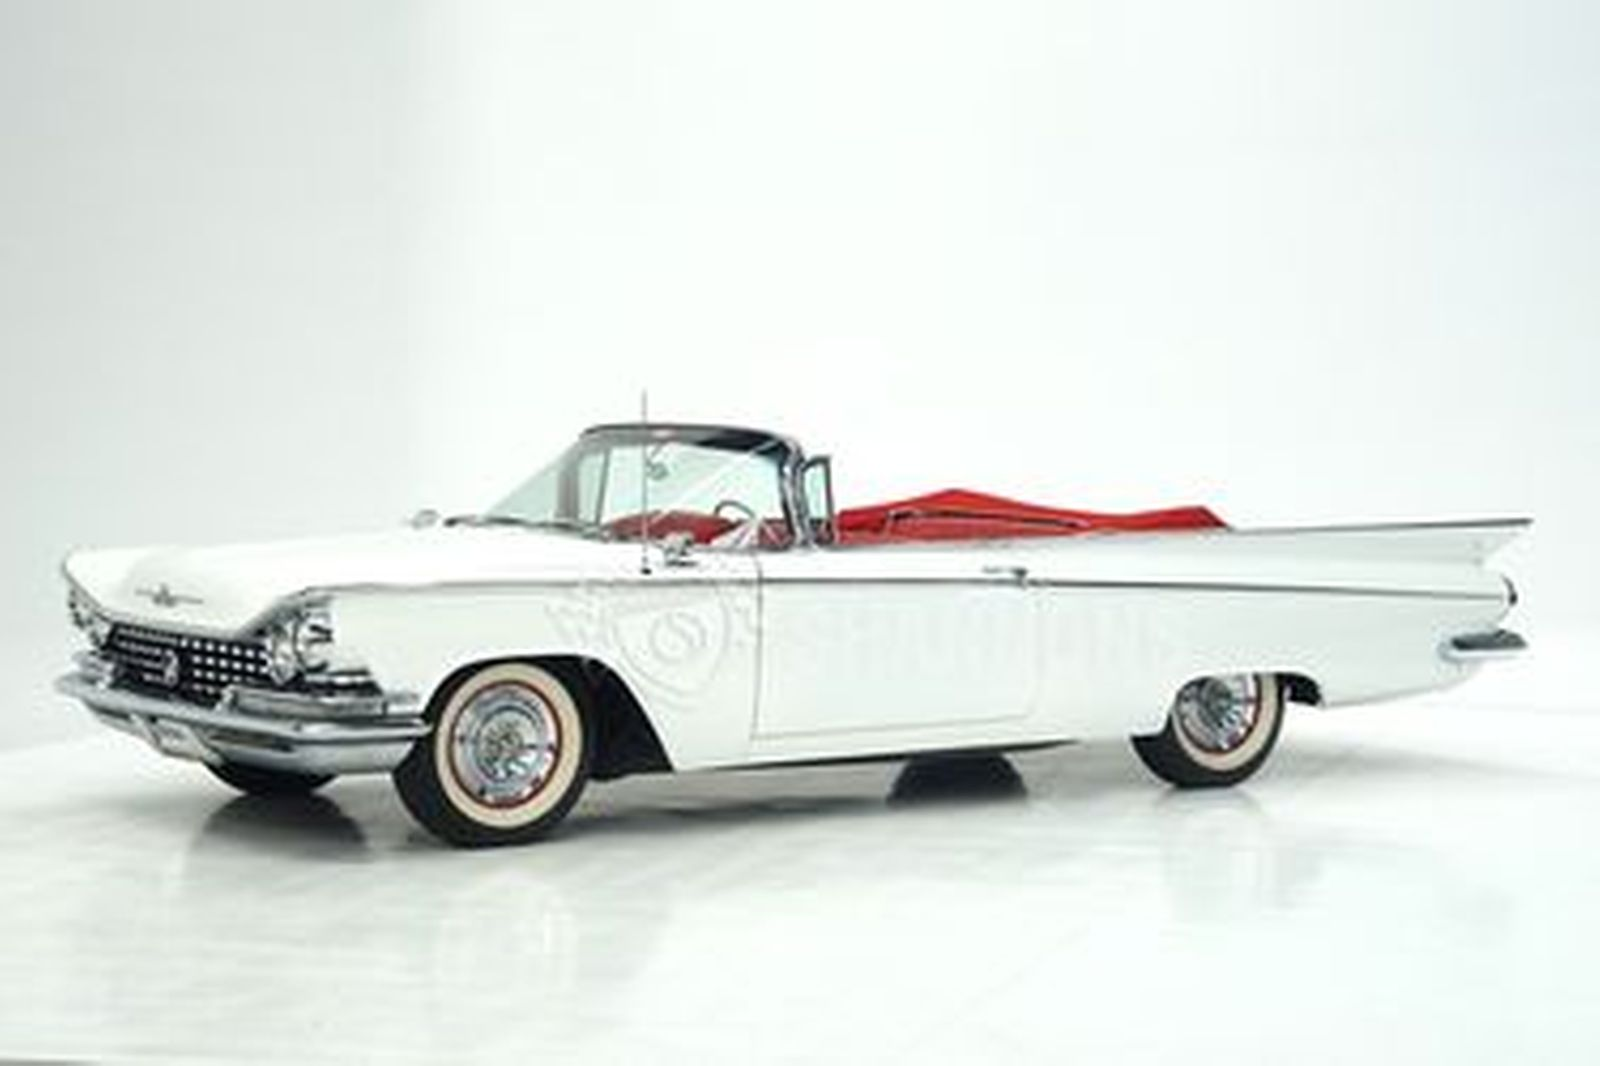 Buick Le Sabre Convertible (LHD)